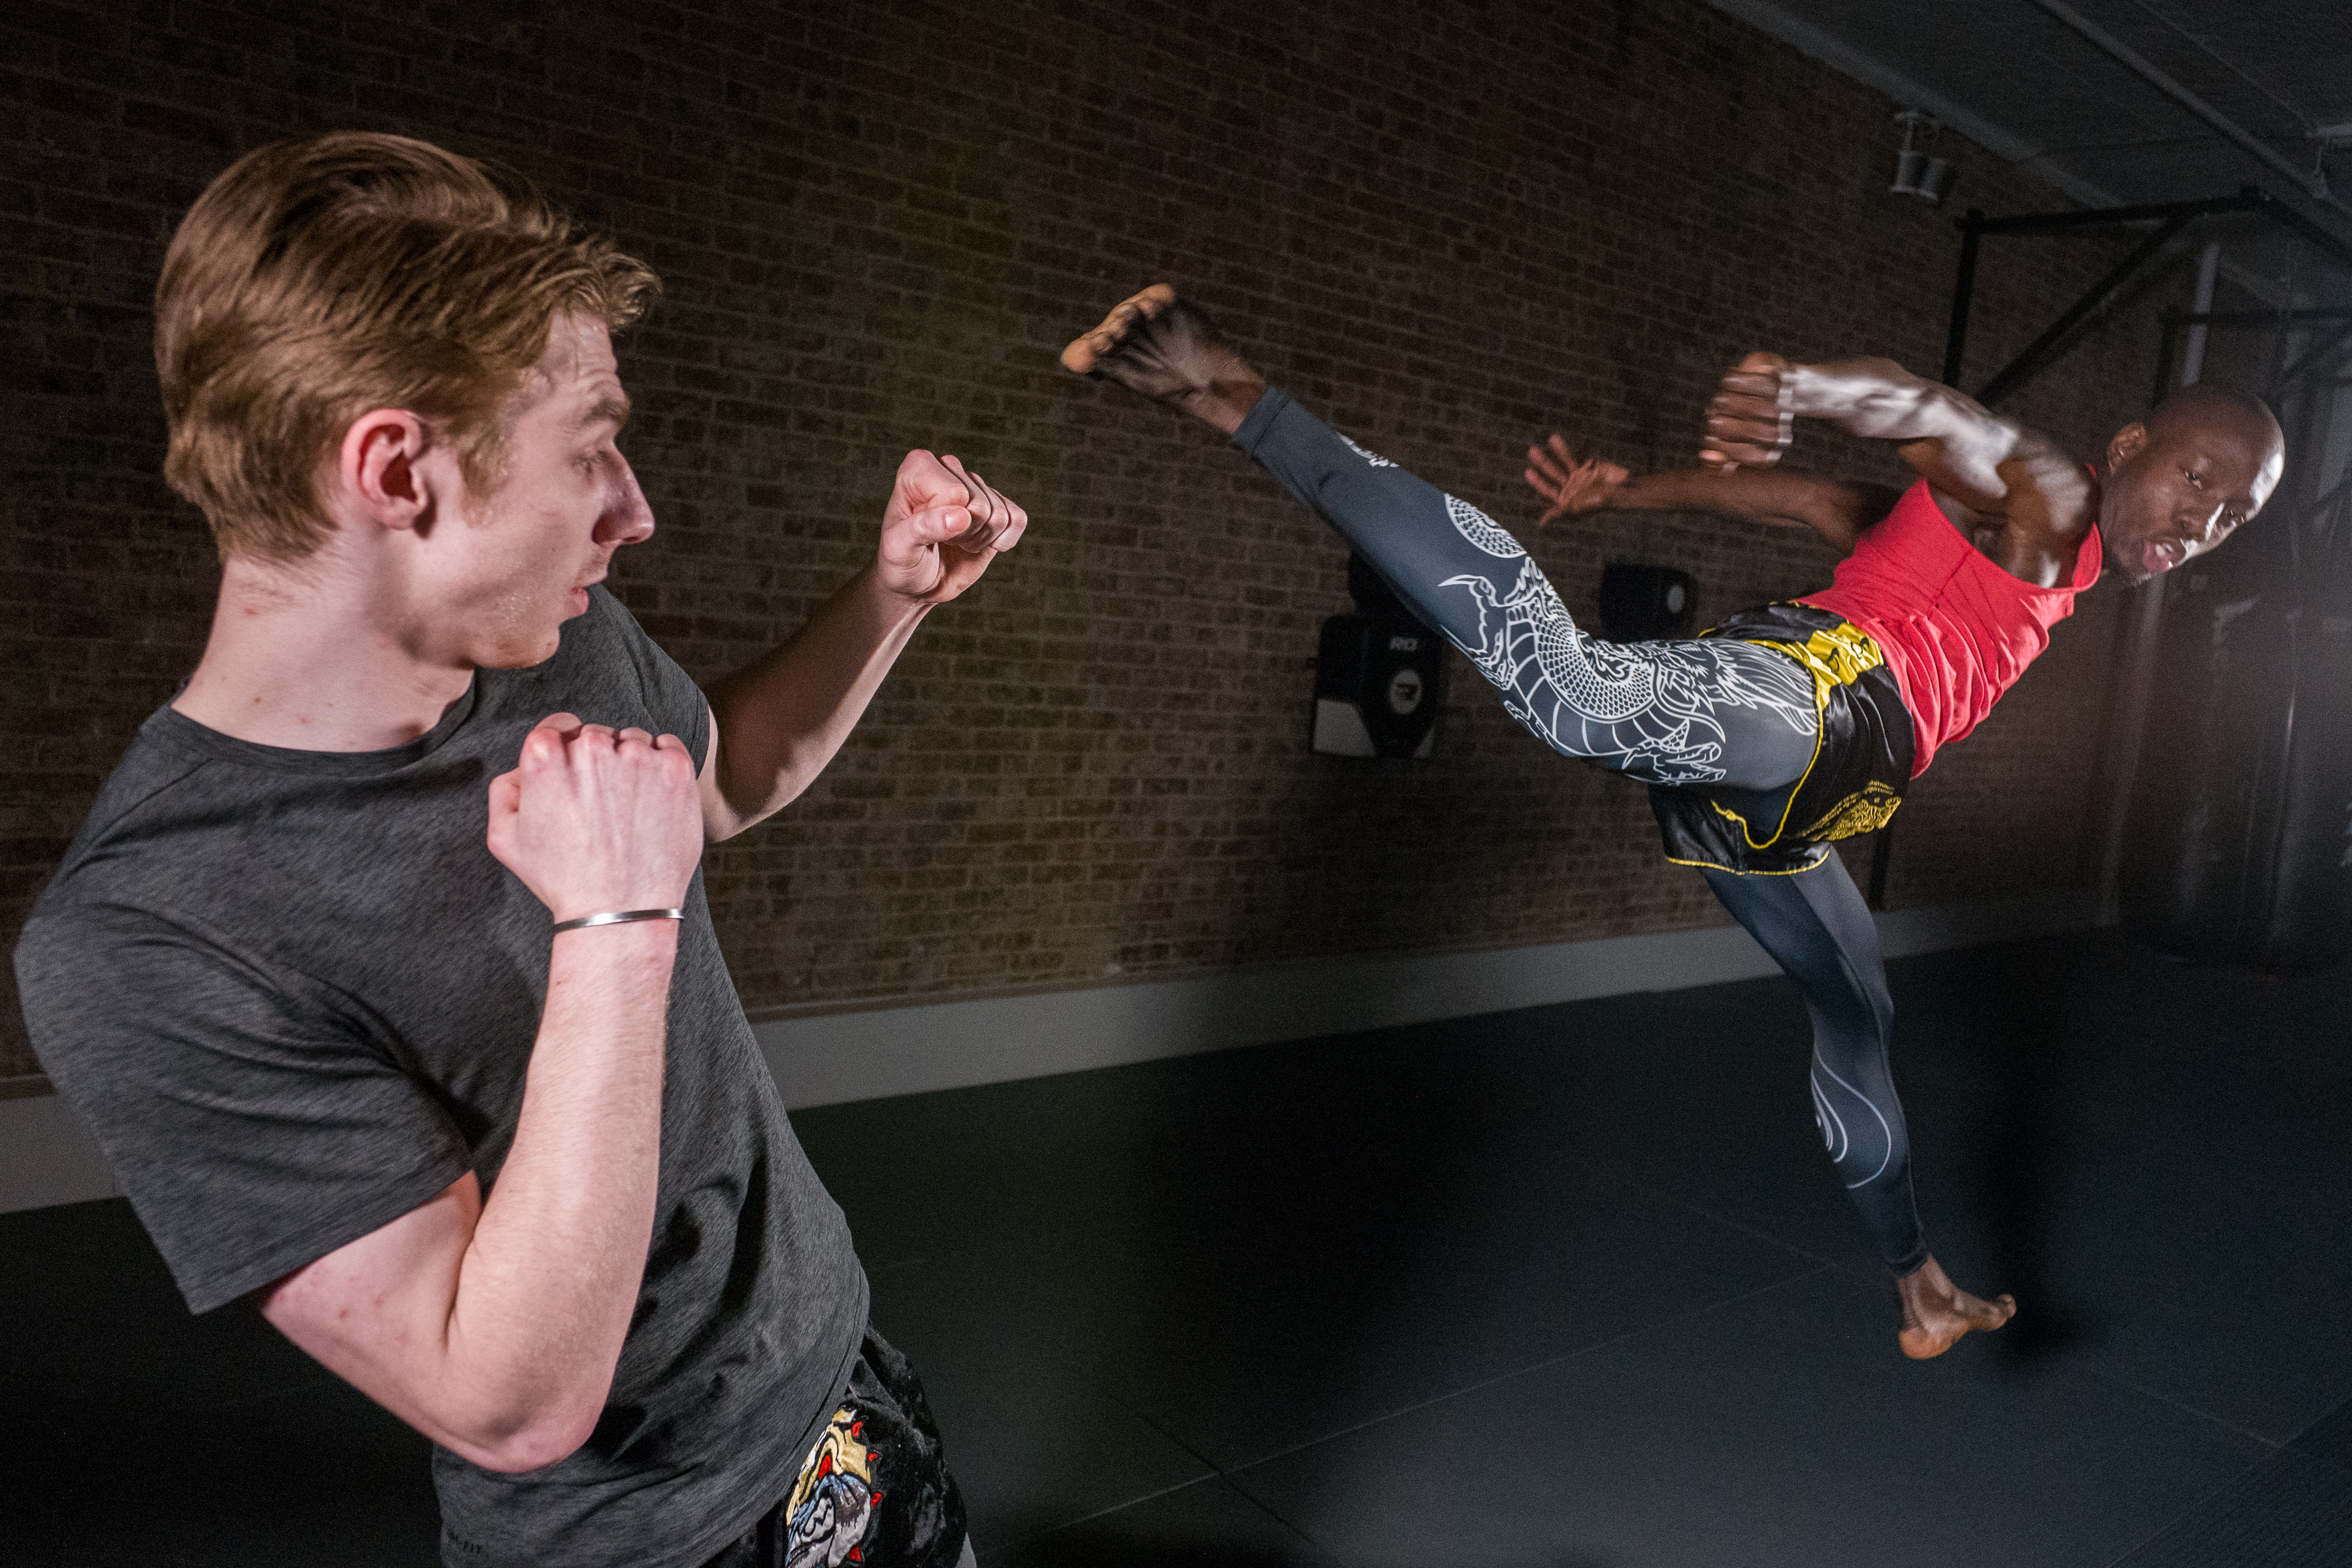 Annual Savate Seminar in New York City at Andersons Martial Arts Academy